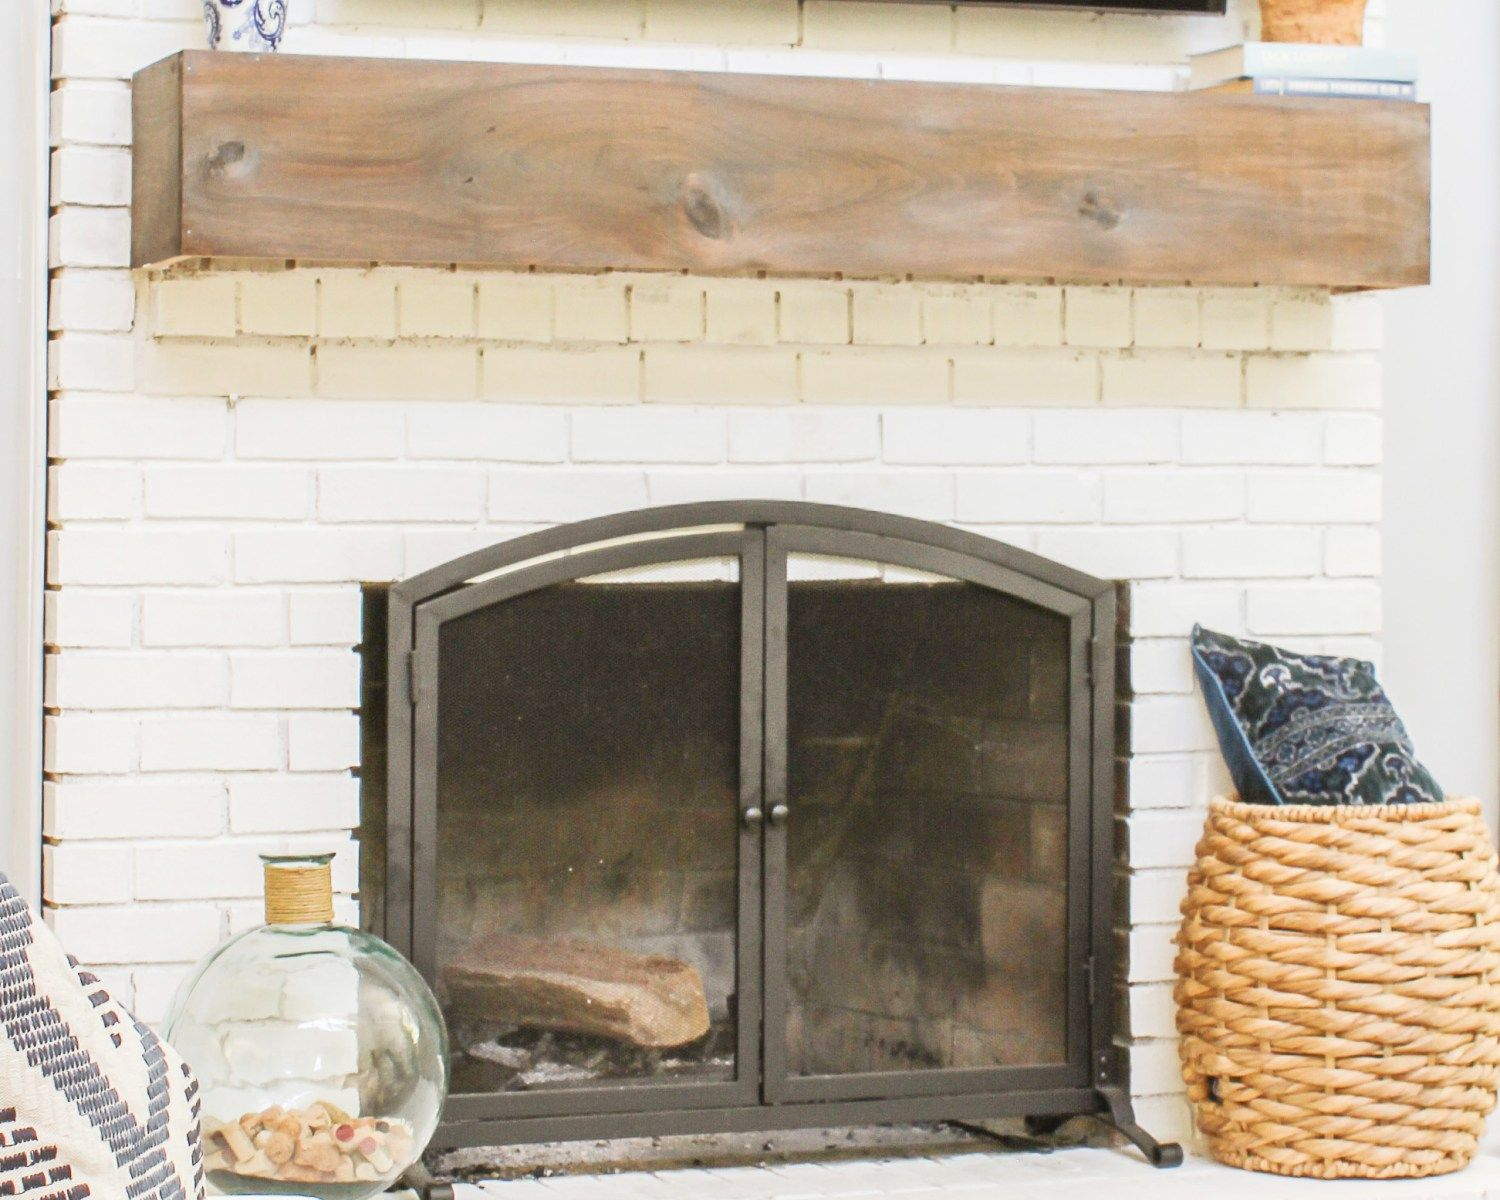 Installing A Mantel On A Brick Fireplace Best Of How to Mount A Tv Over A Brick Fireplace and Hide the Wires